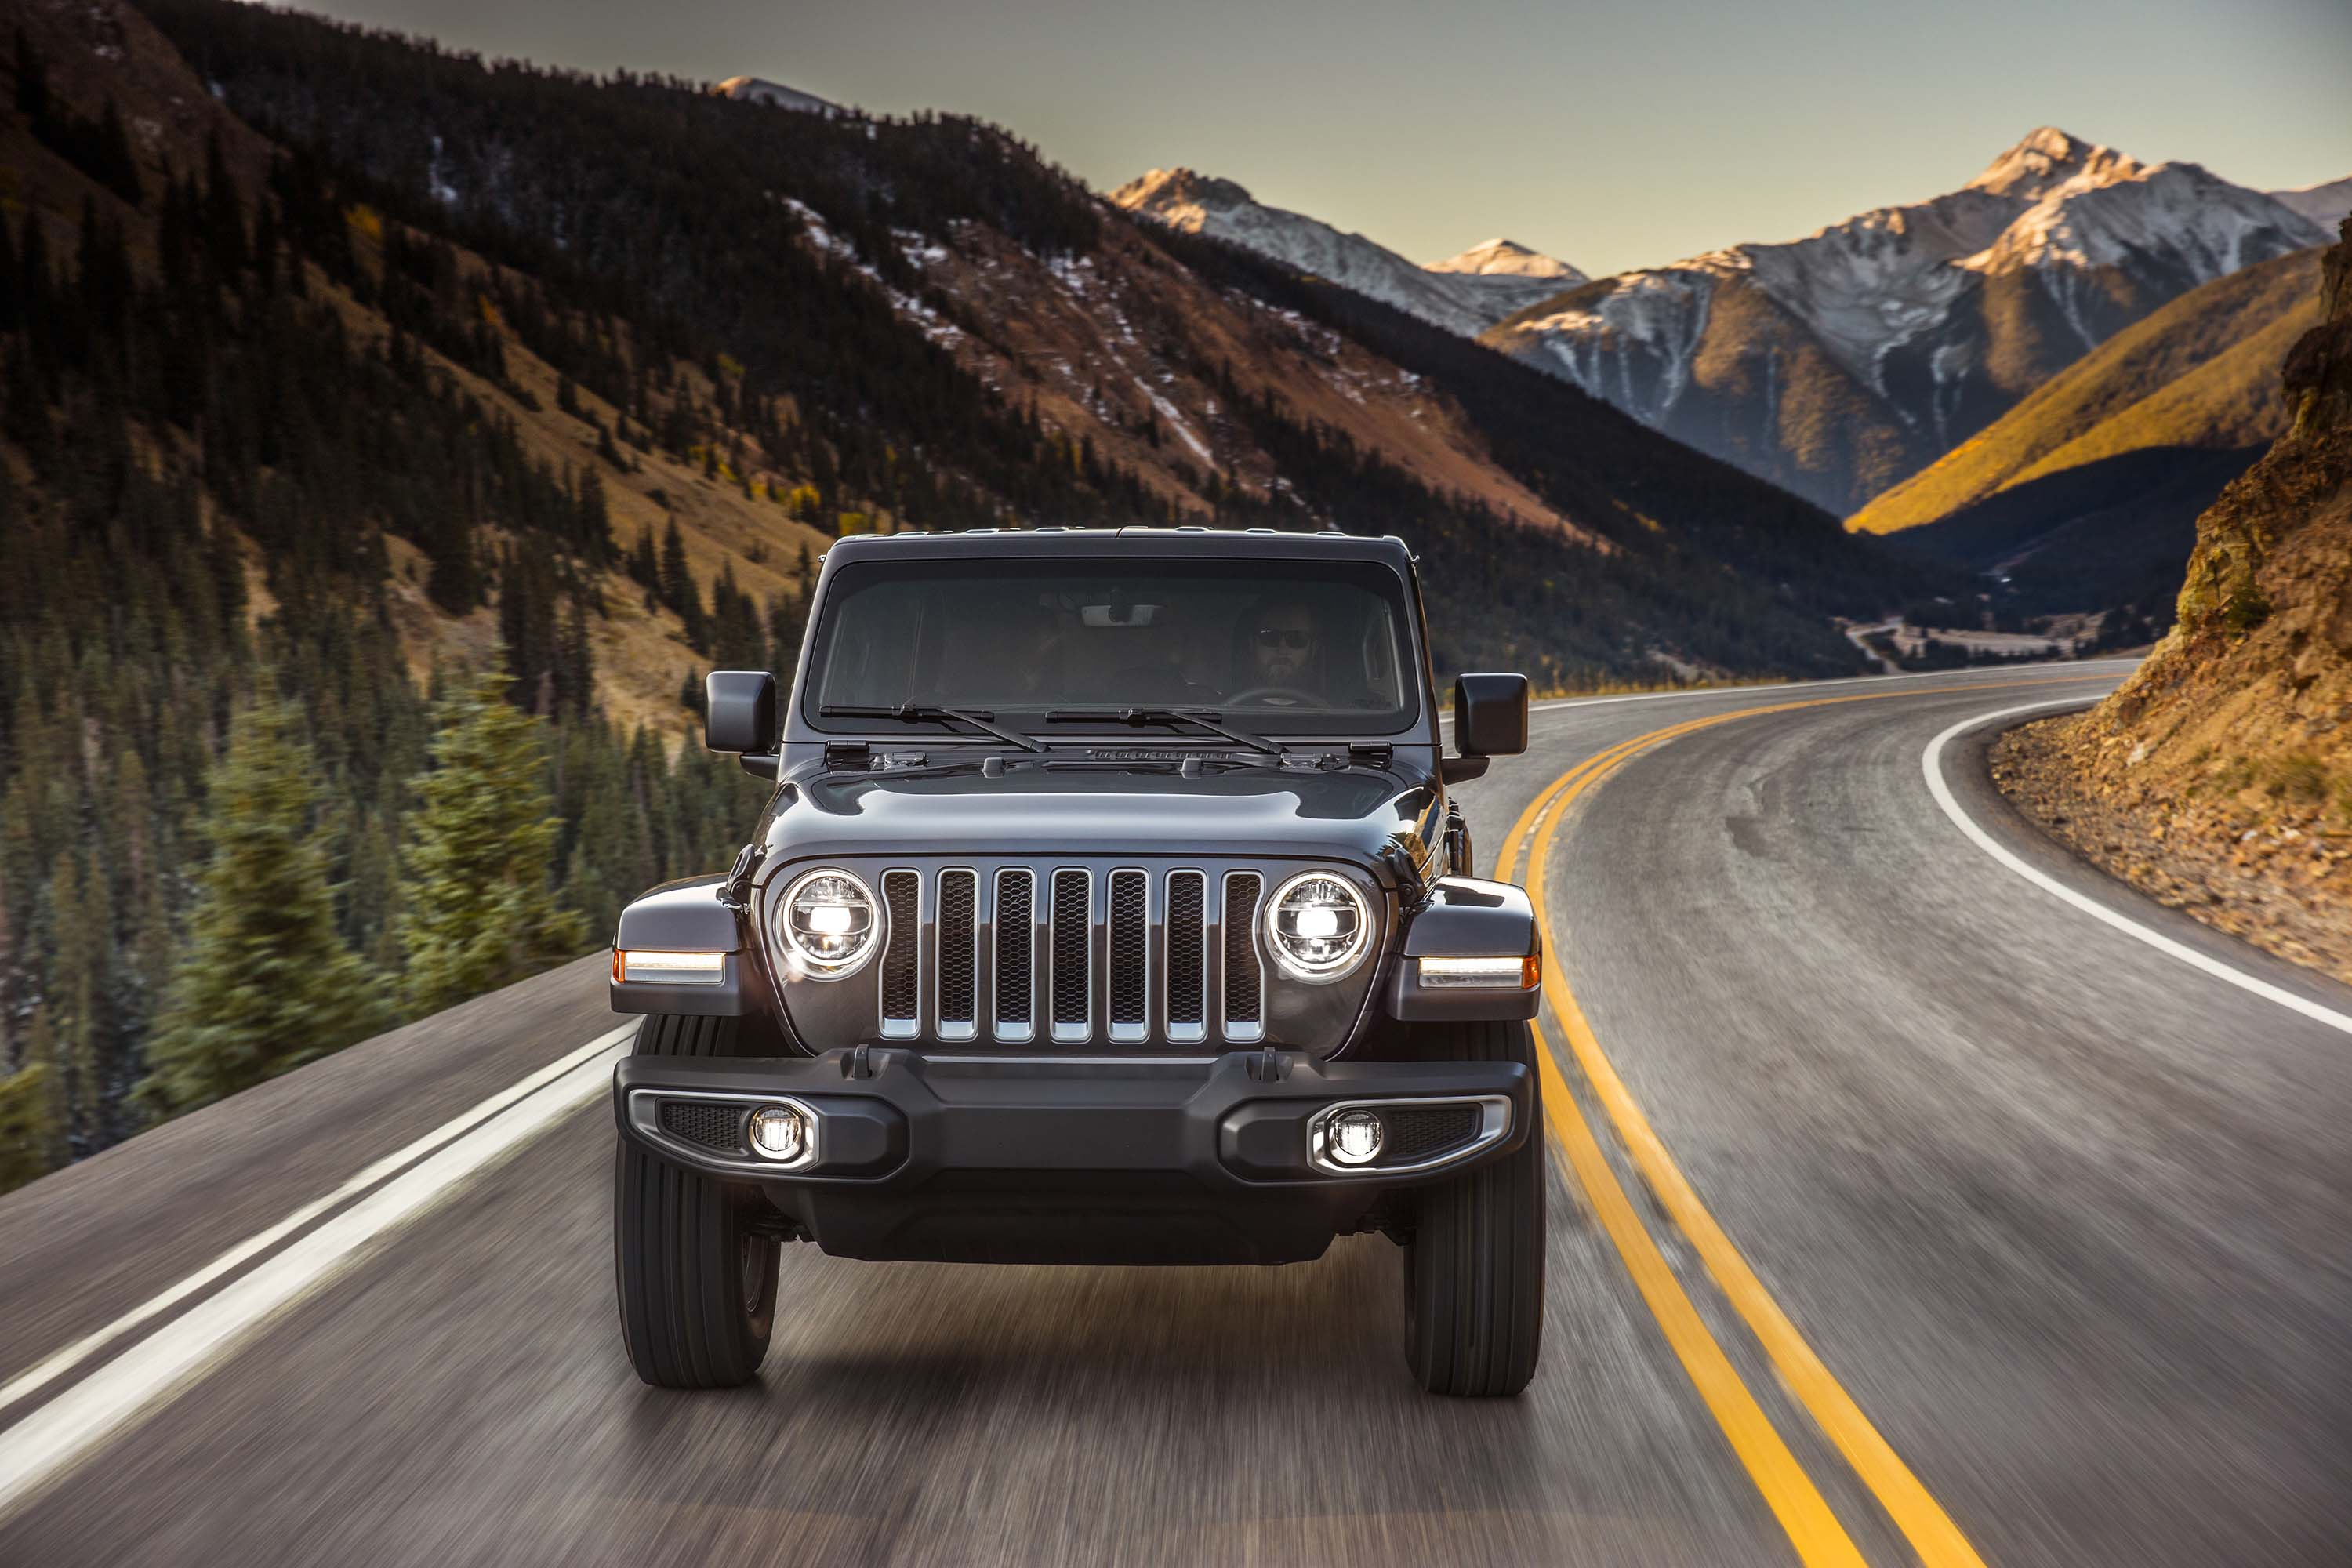 2020 Jeep Wrangler preview